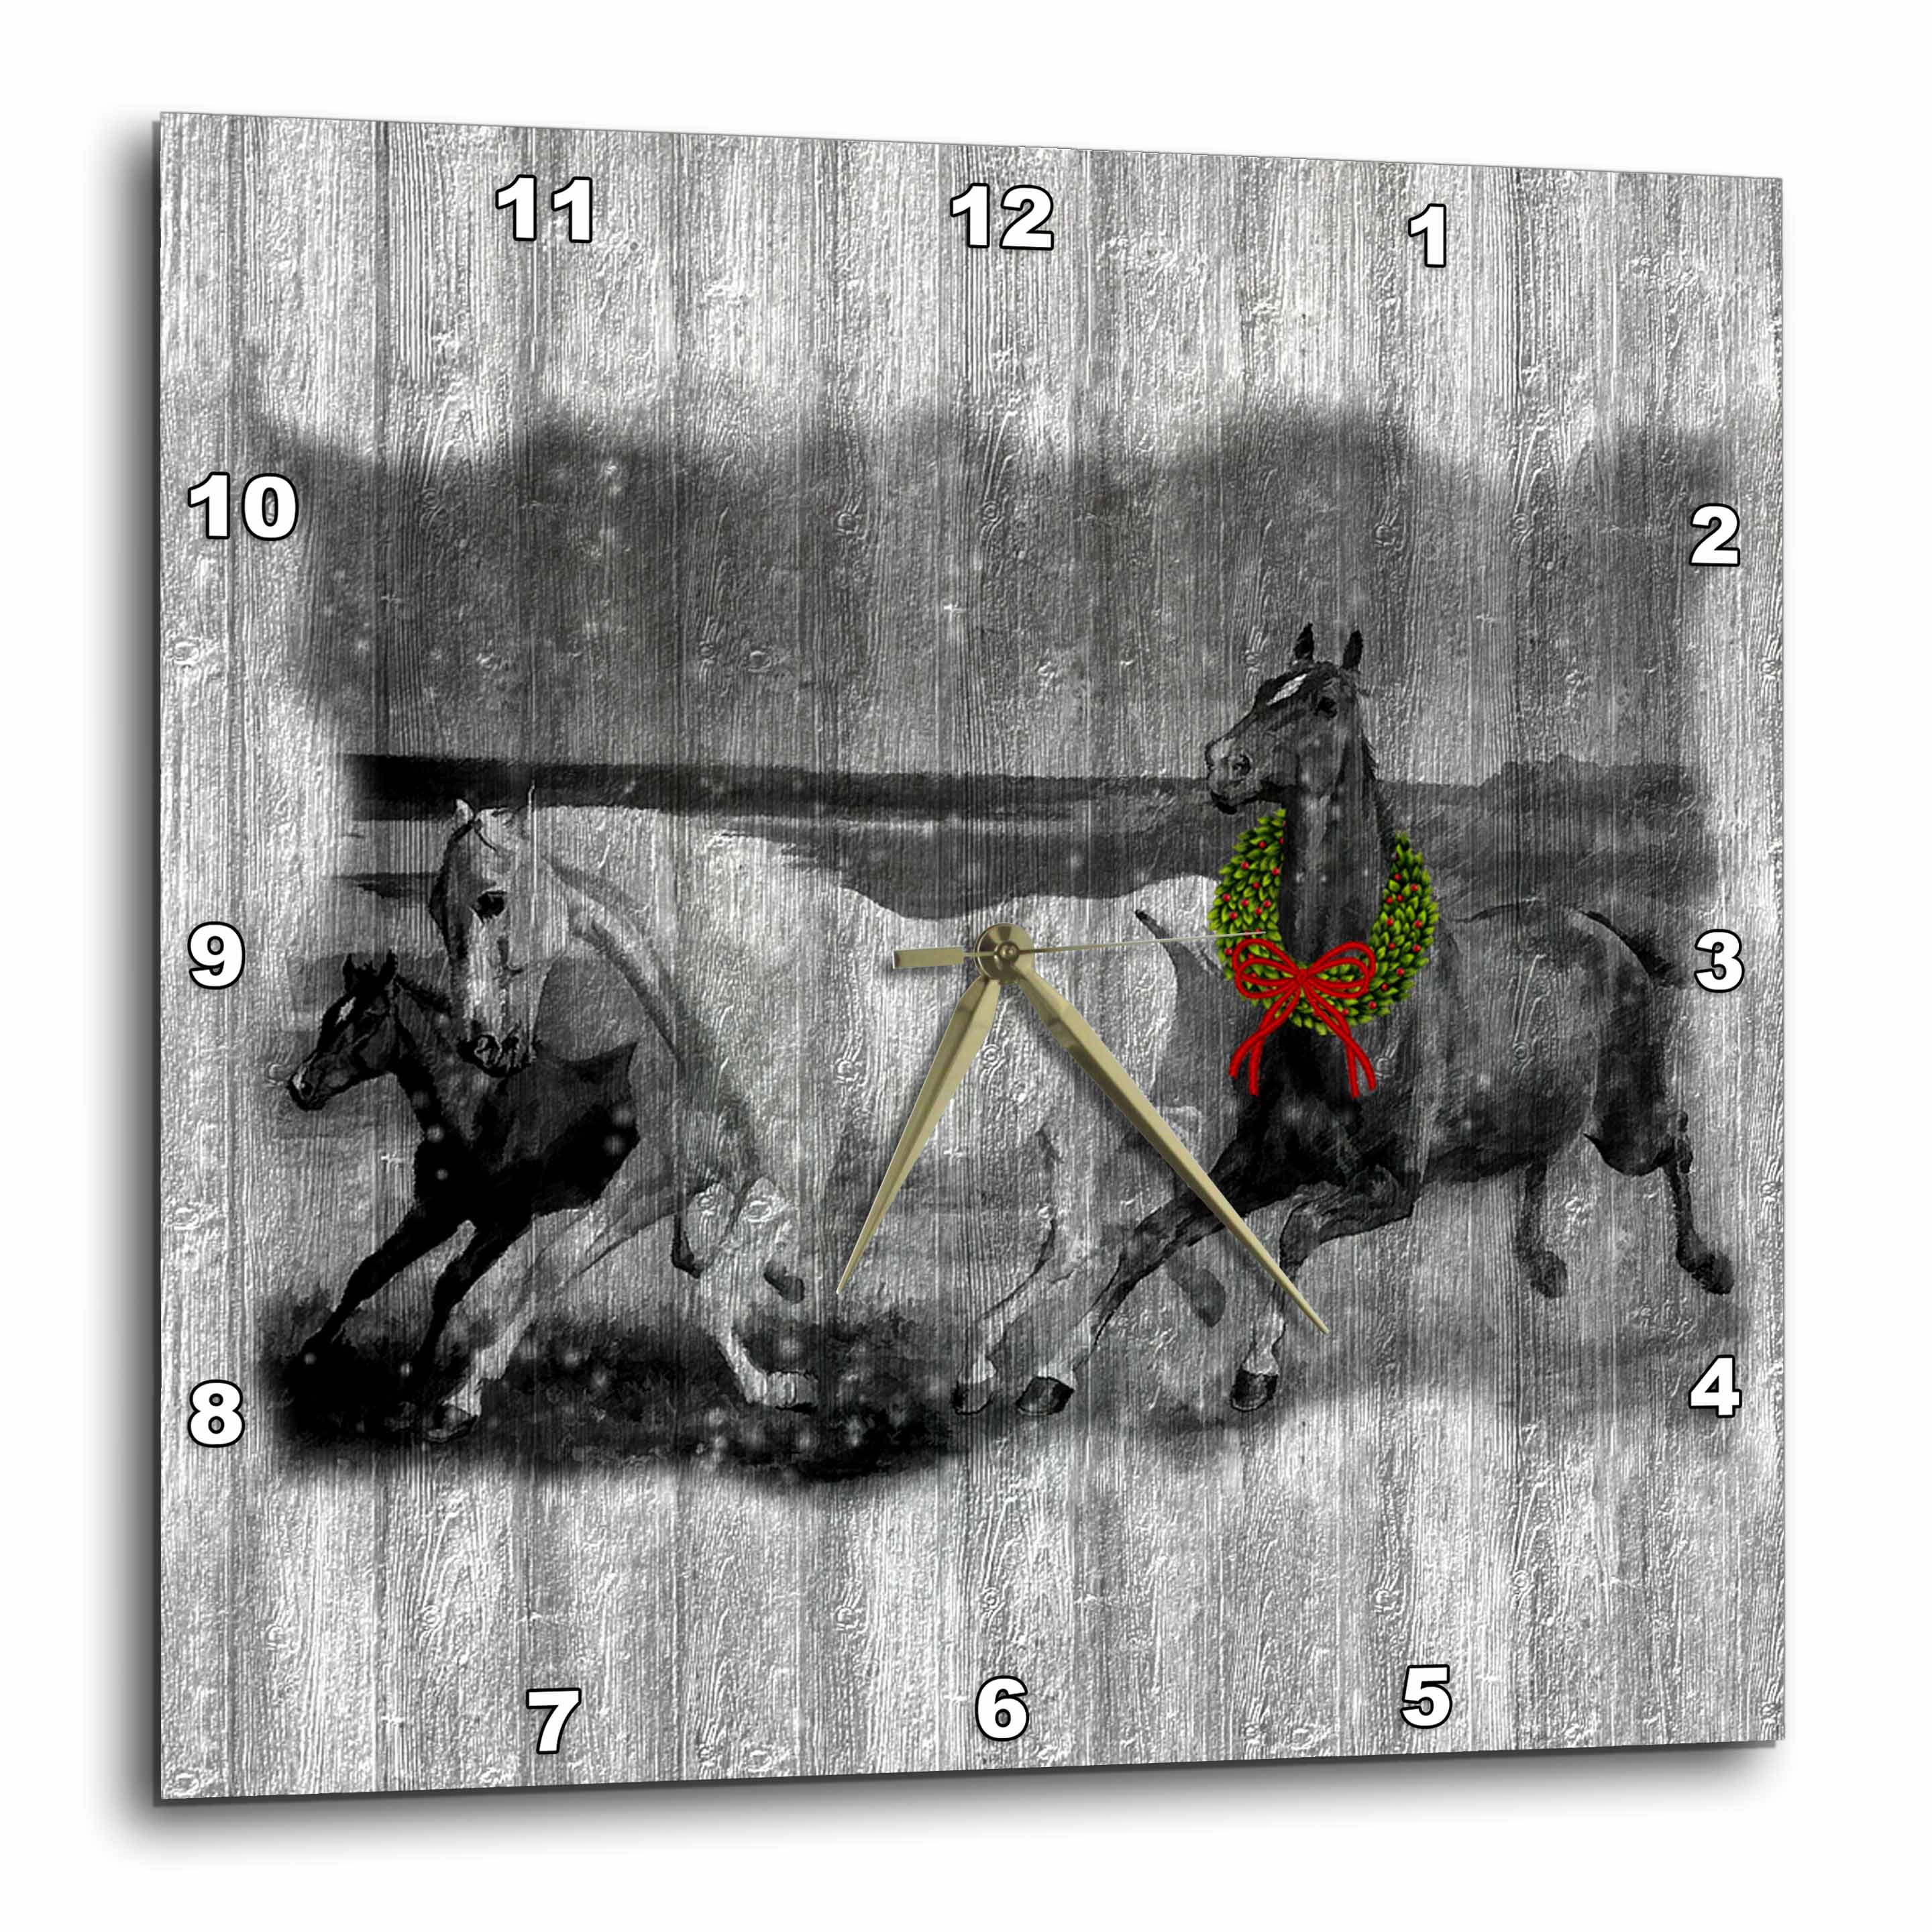 3dRose Western Wild Horses on Faded Gray Barn Wood with Christmas Wreath, Wall Clock, 10 by 10-inch